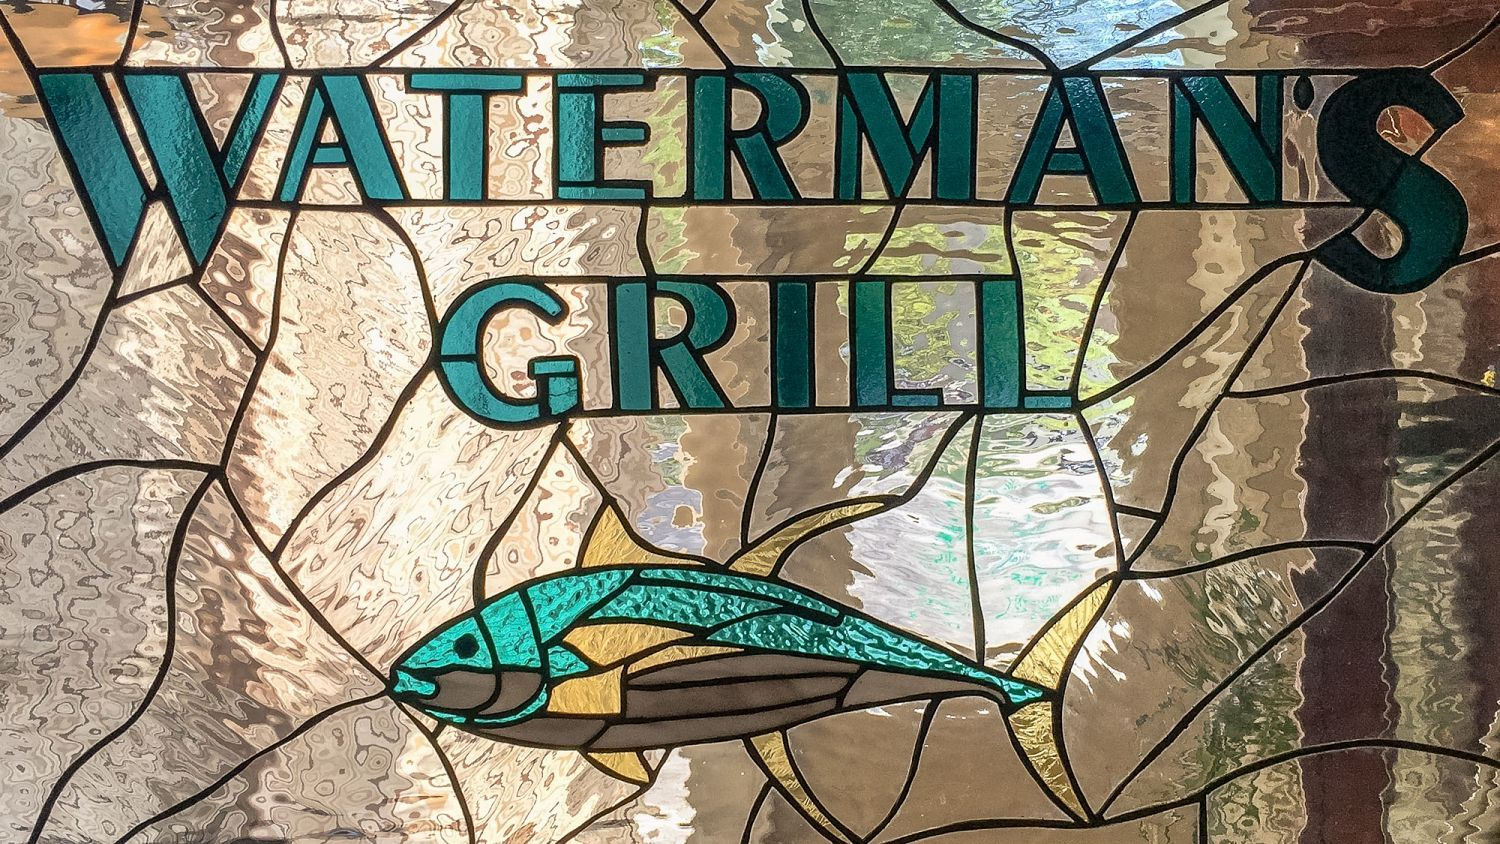 About Watermans Grill